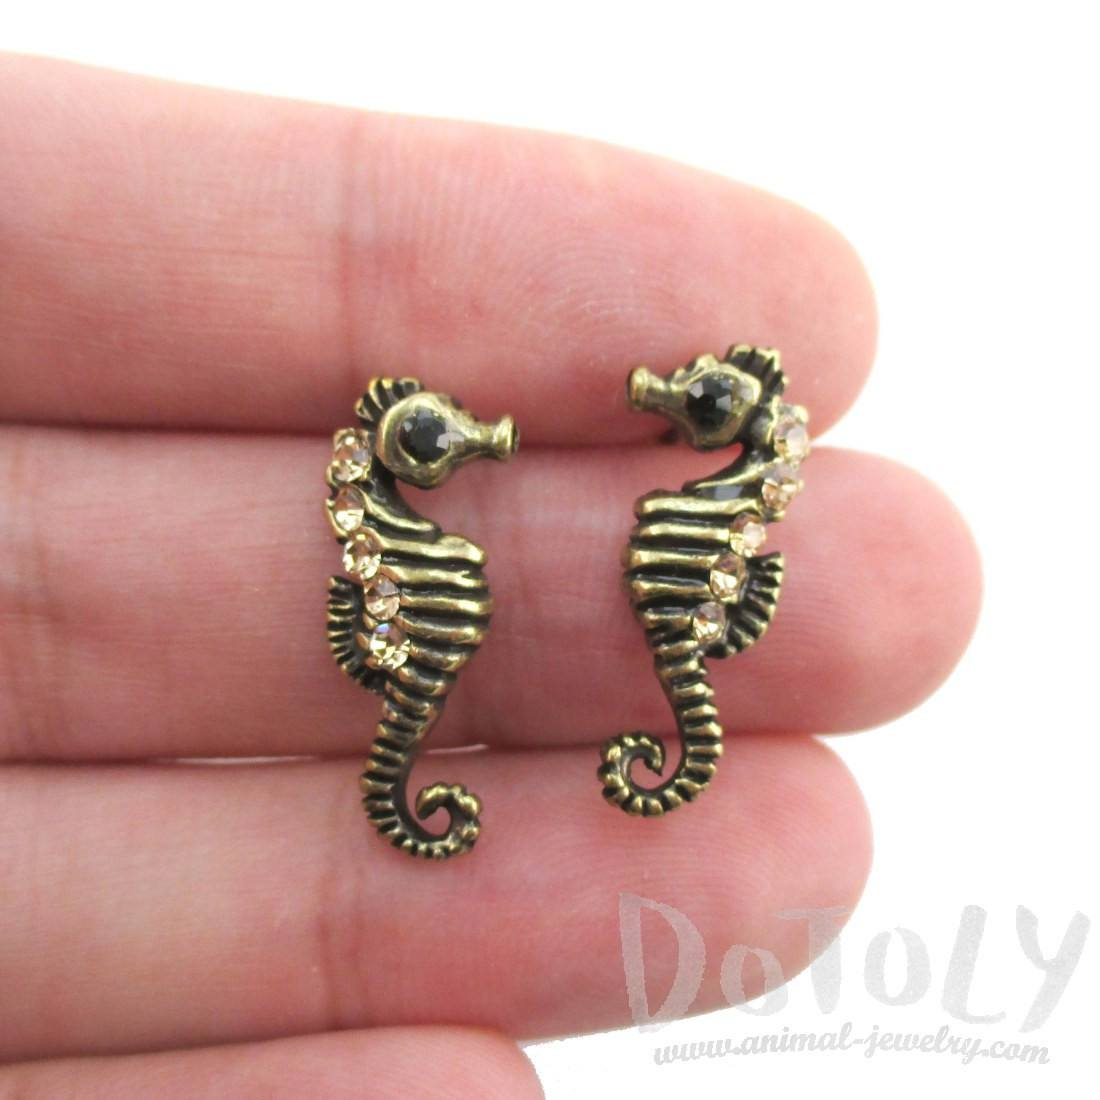 Realistic Seahorse Shaped Rhinestone Earrings in Brass